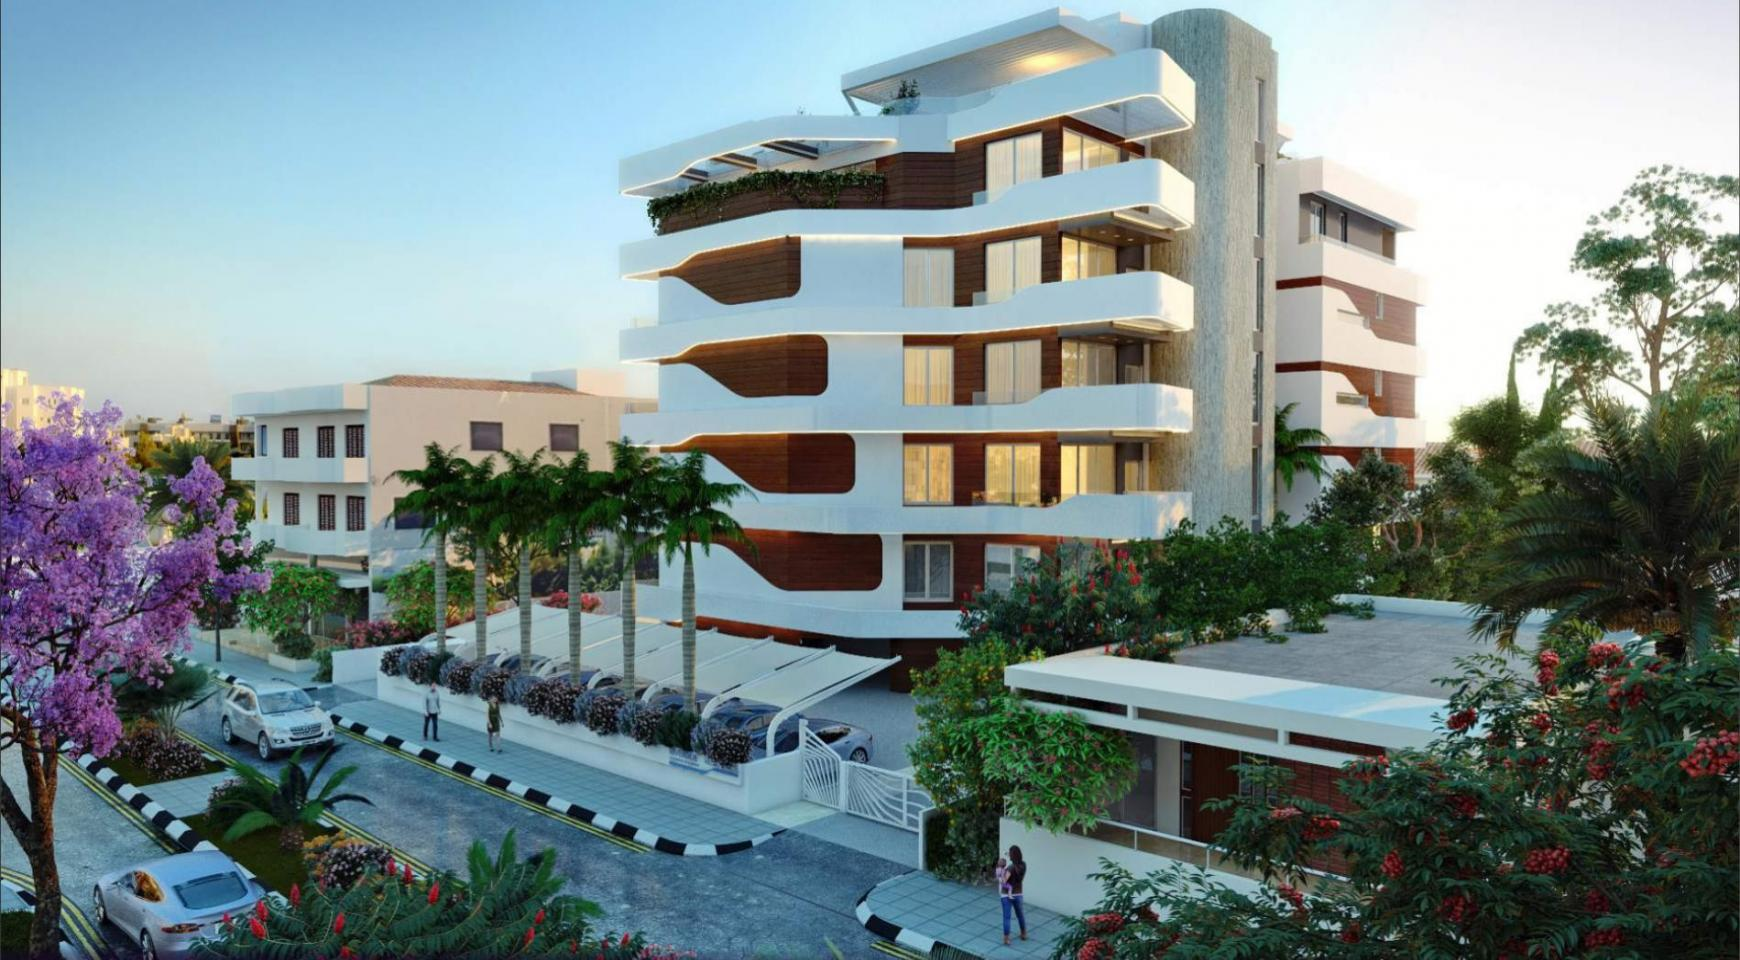 New 2 Bedroom Apartment in a Contemporary Complex near the Sea - 1